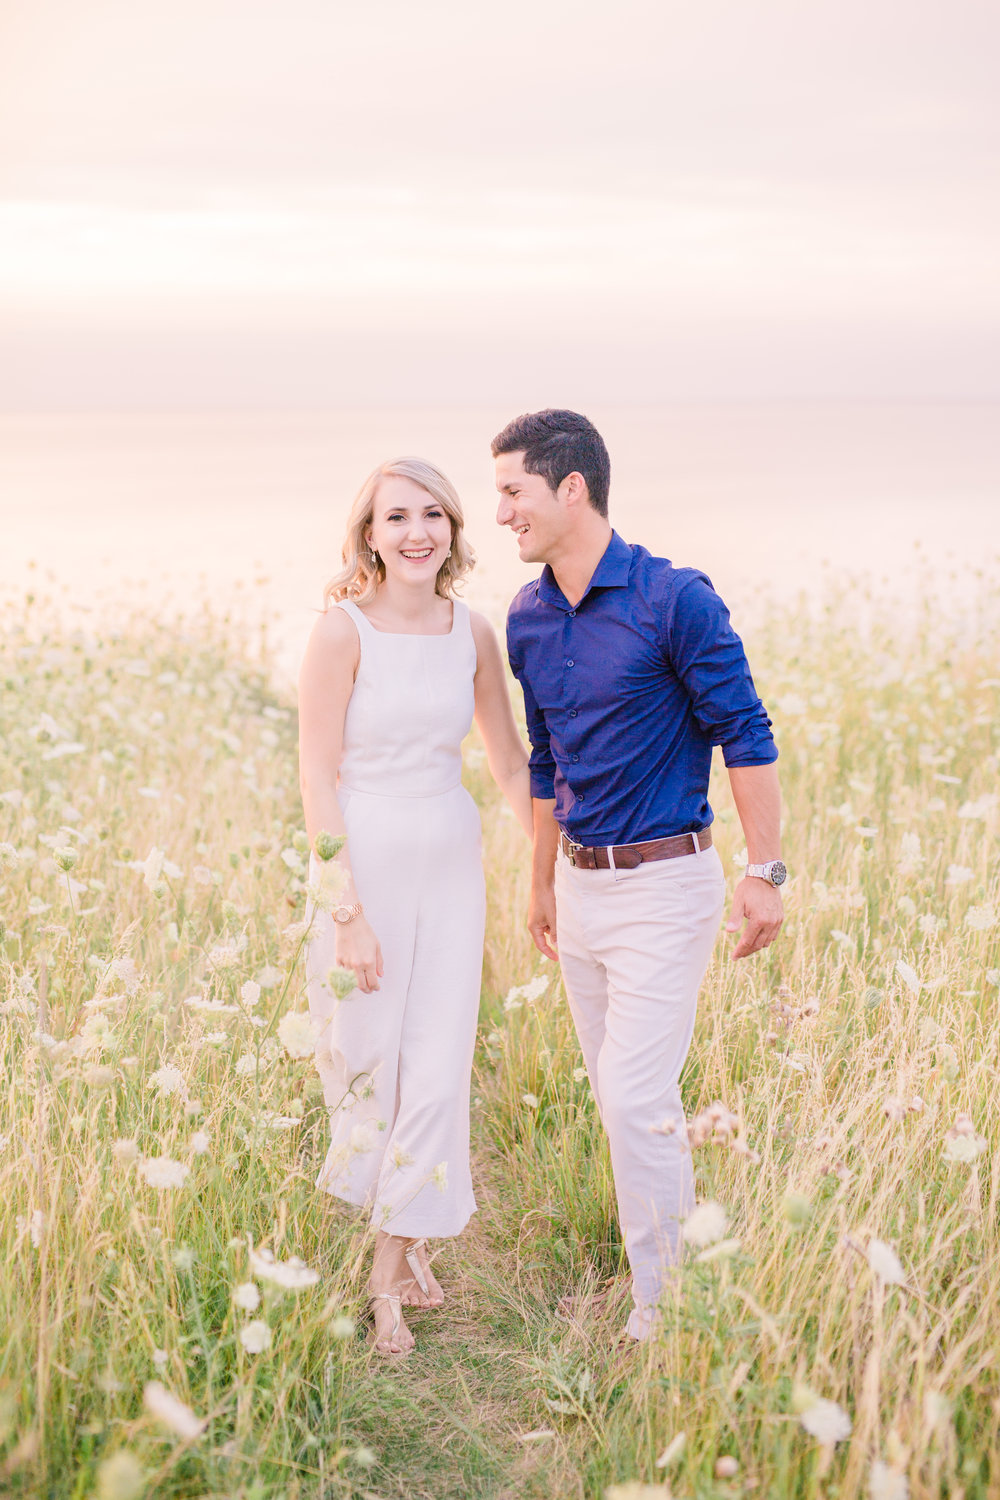 Hilary & Rob Engagement Photography Session-297.jpg